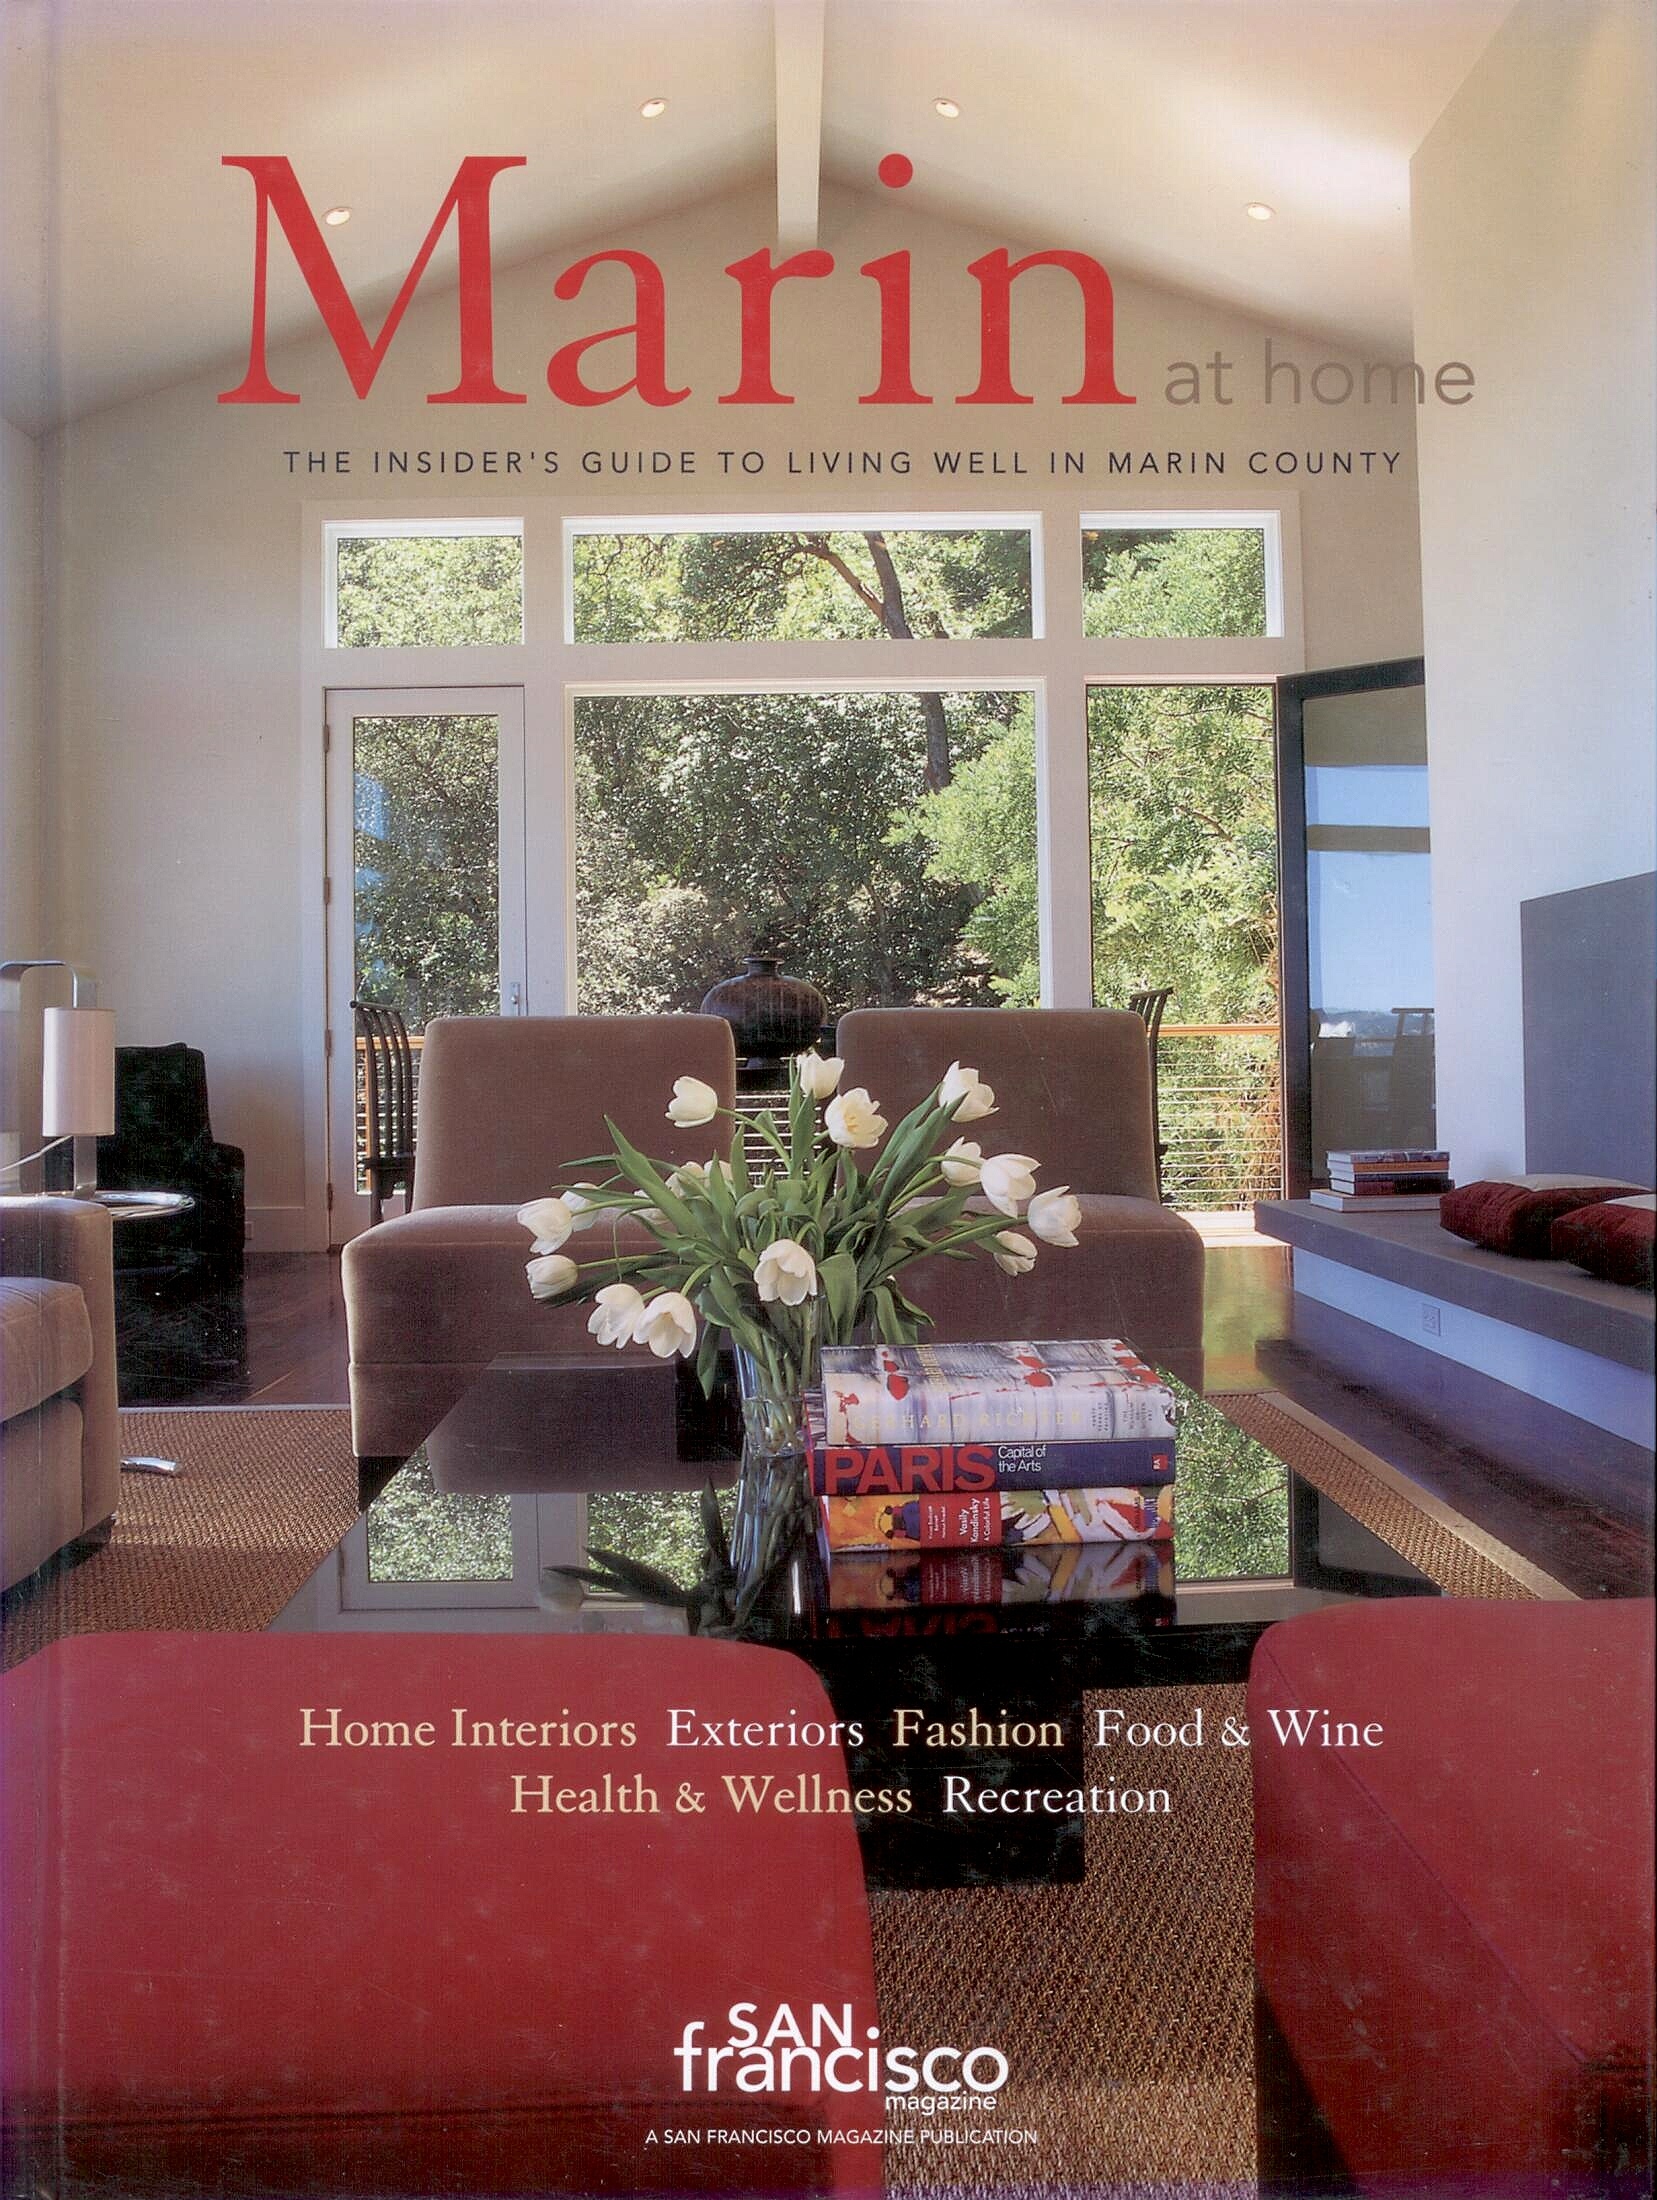 Marin at Home book Cover.jpg